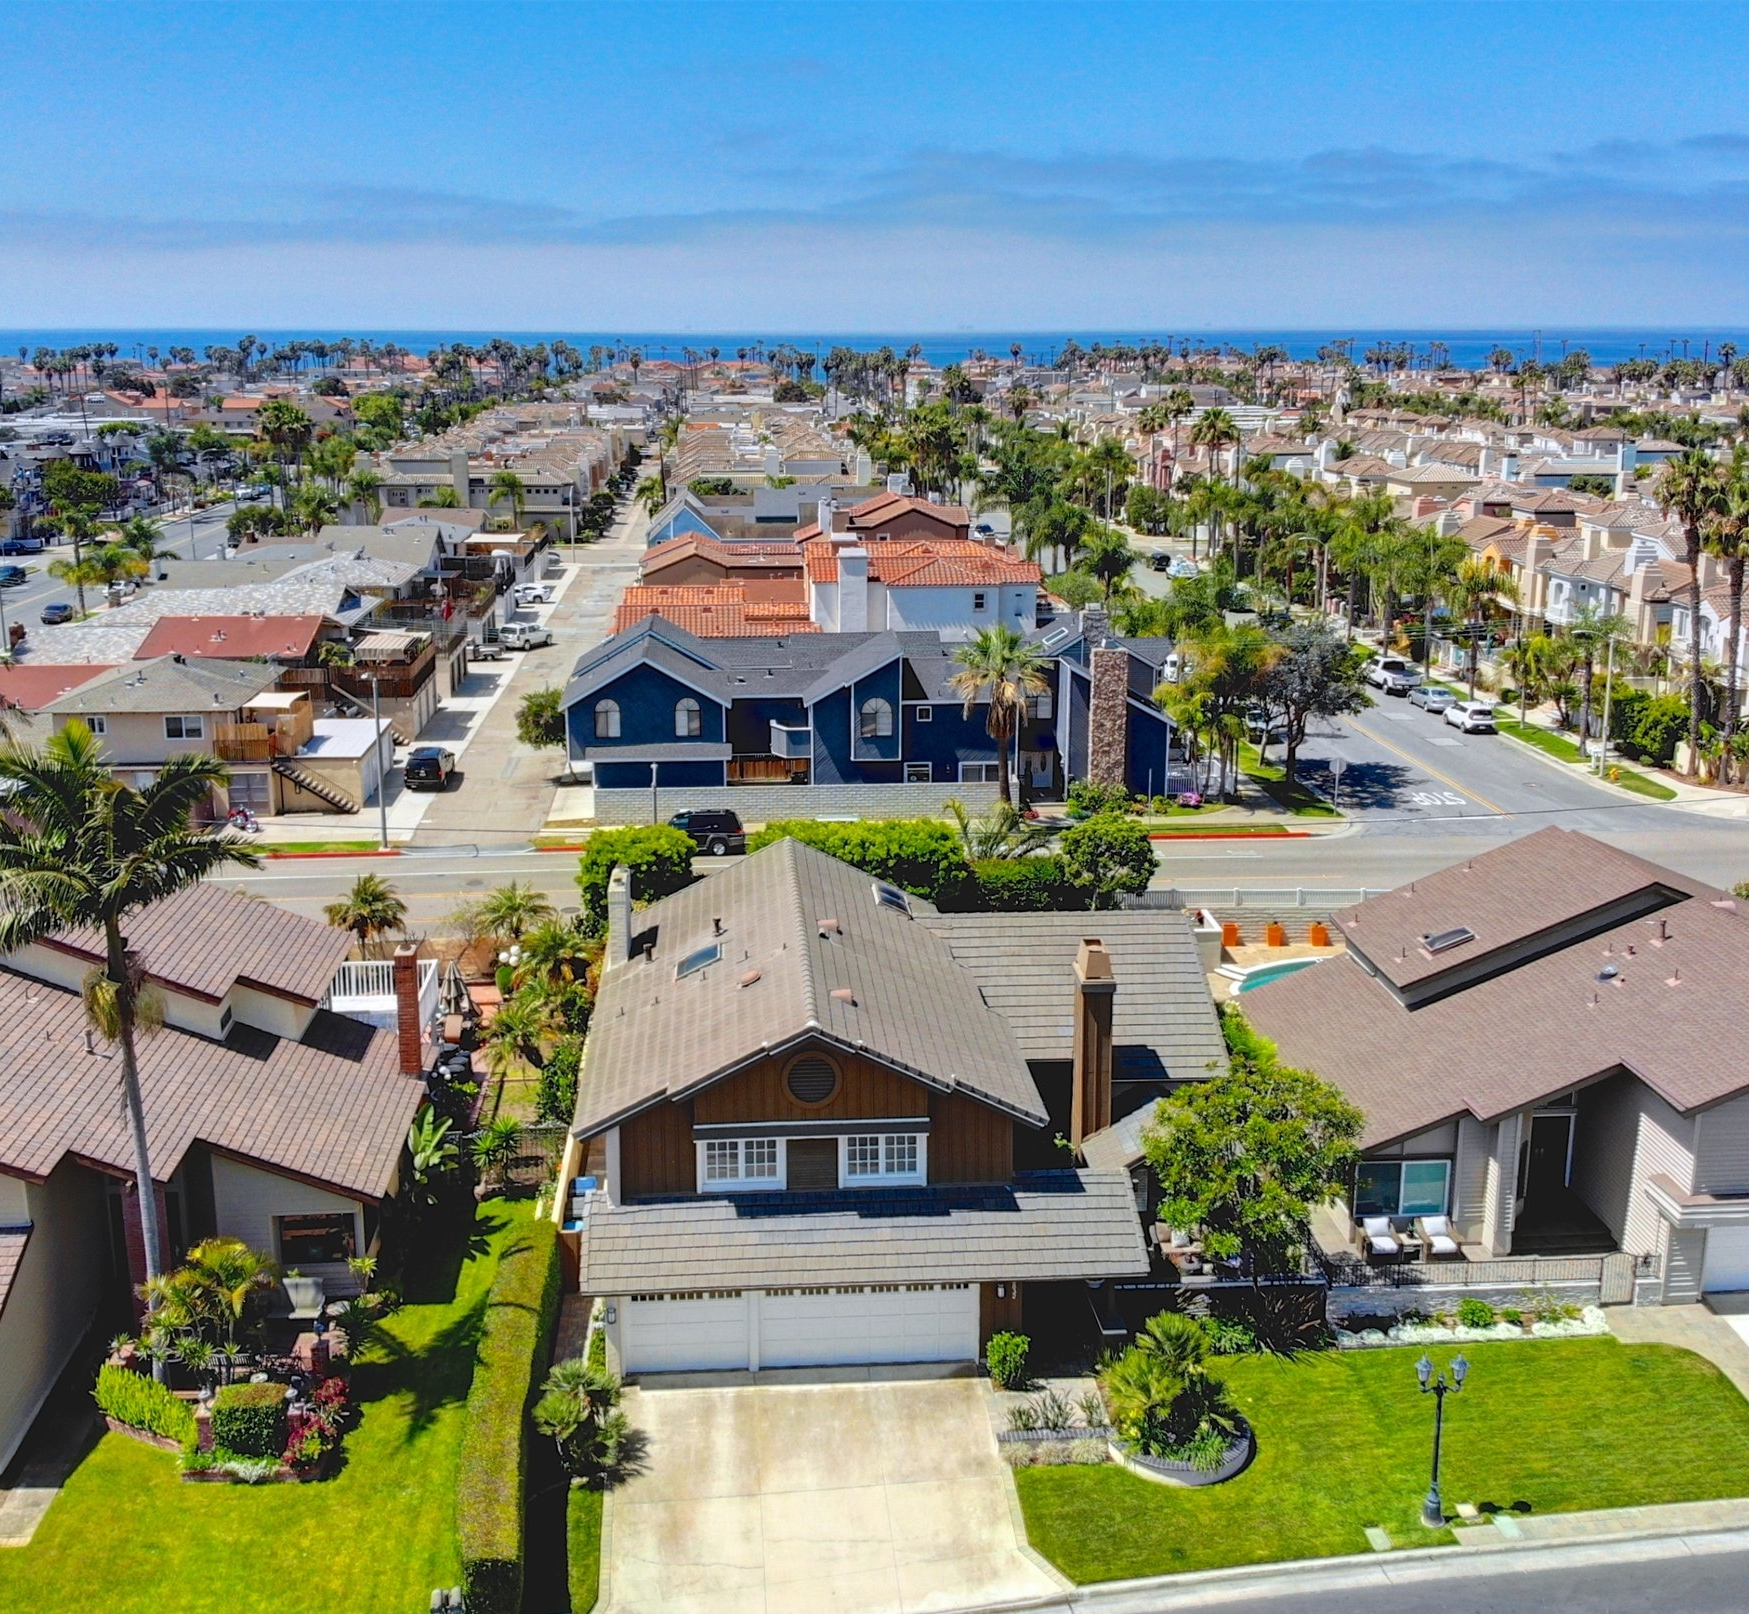 - Beach Close SandCastle EstatesSOLD by MARIA X at $1,492,0006832 Presidente Dr. Huntington Beach4 Bedrooms | 3 Baths | 2917 sq. ft.For More Pics, Info & Video